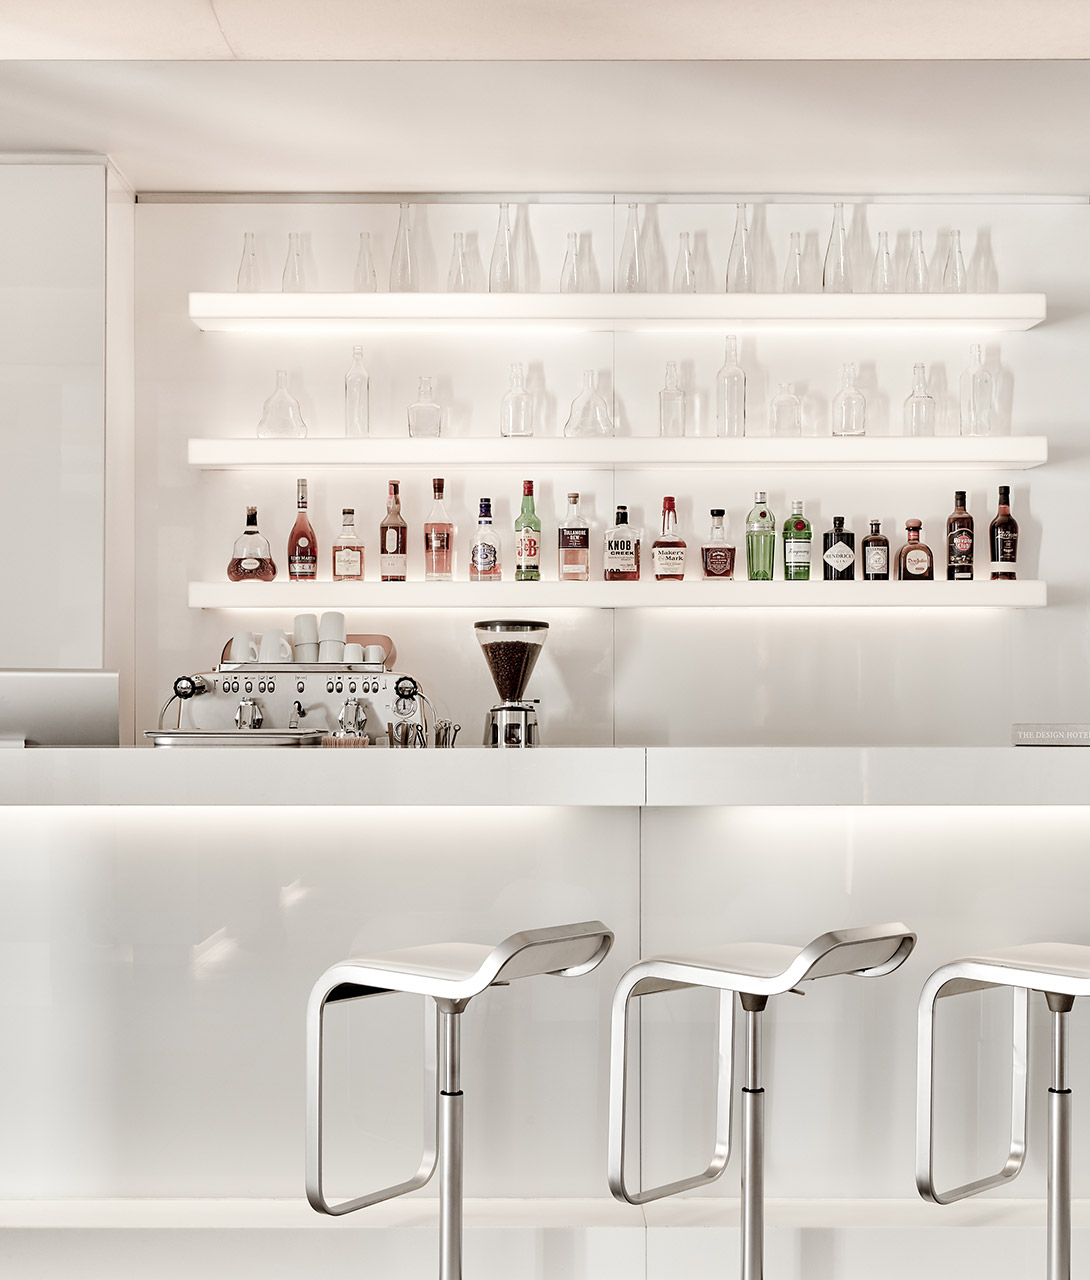 the-pure-bar-interior-k-02-x2x2.jpg